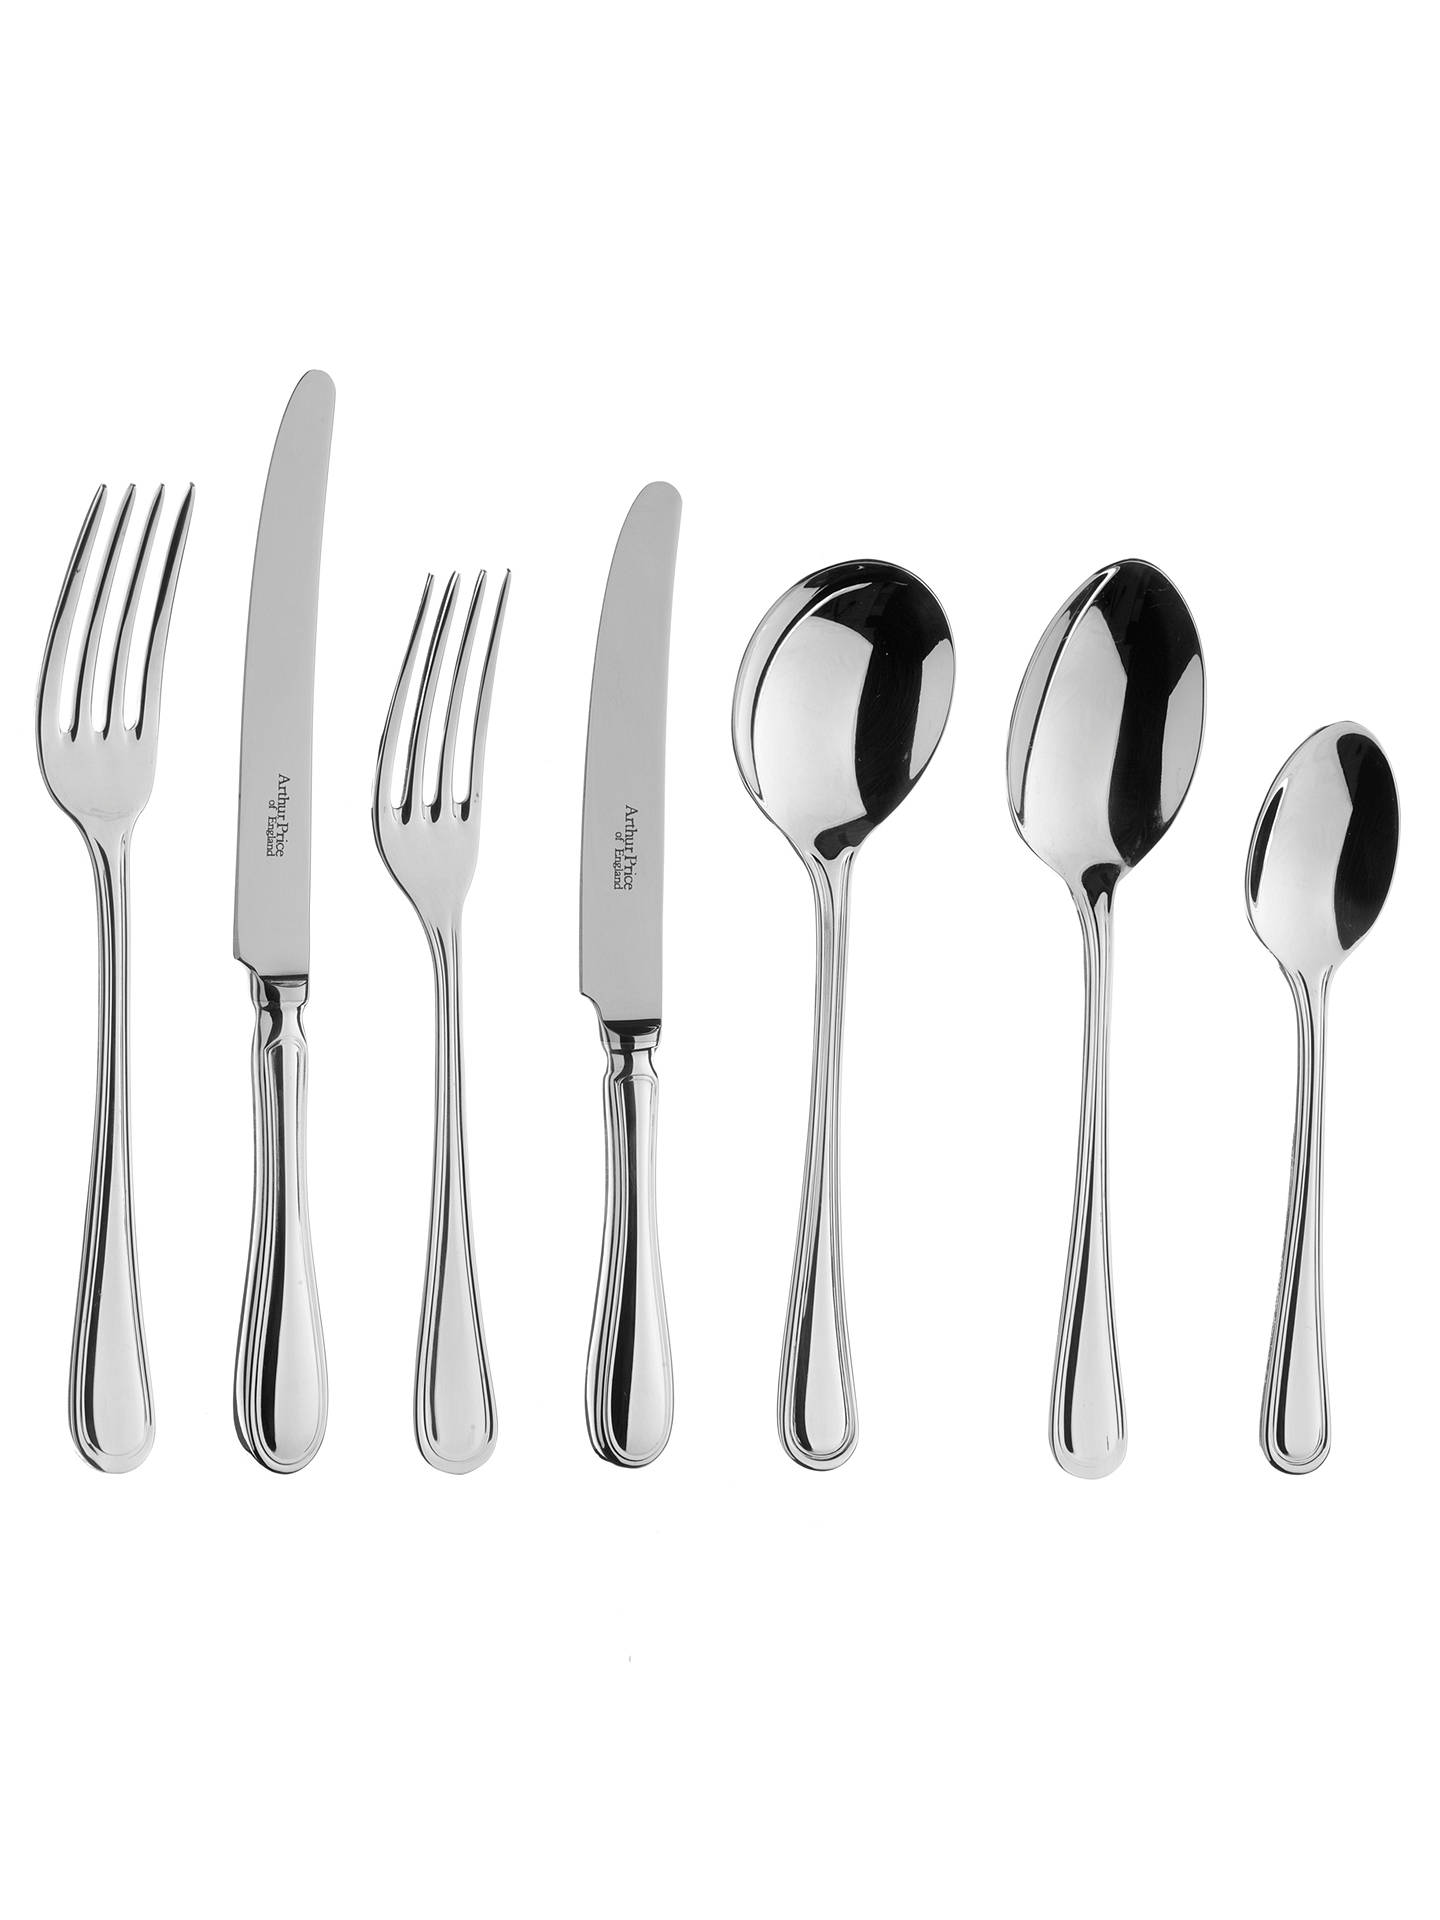 Buy Arthur Price Britannia Table Fork Online at johnlewis.com